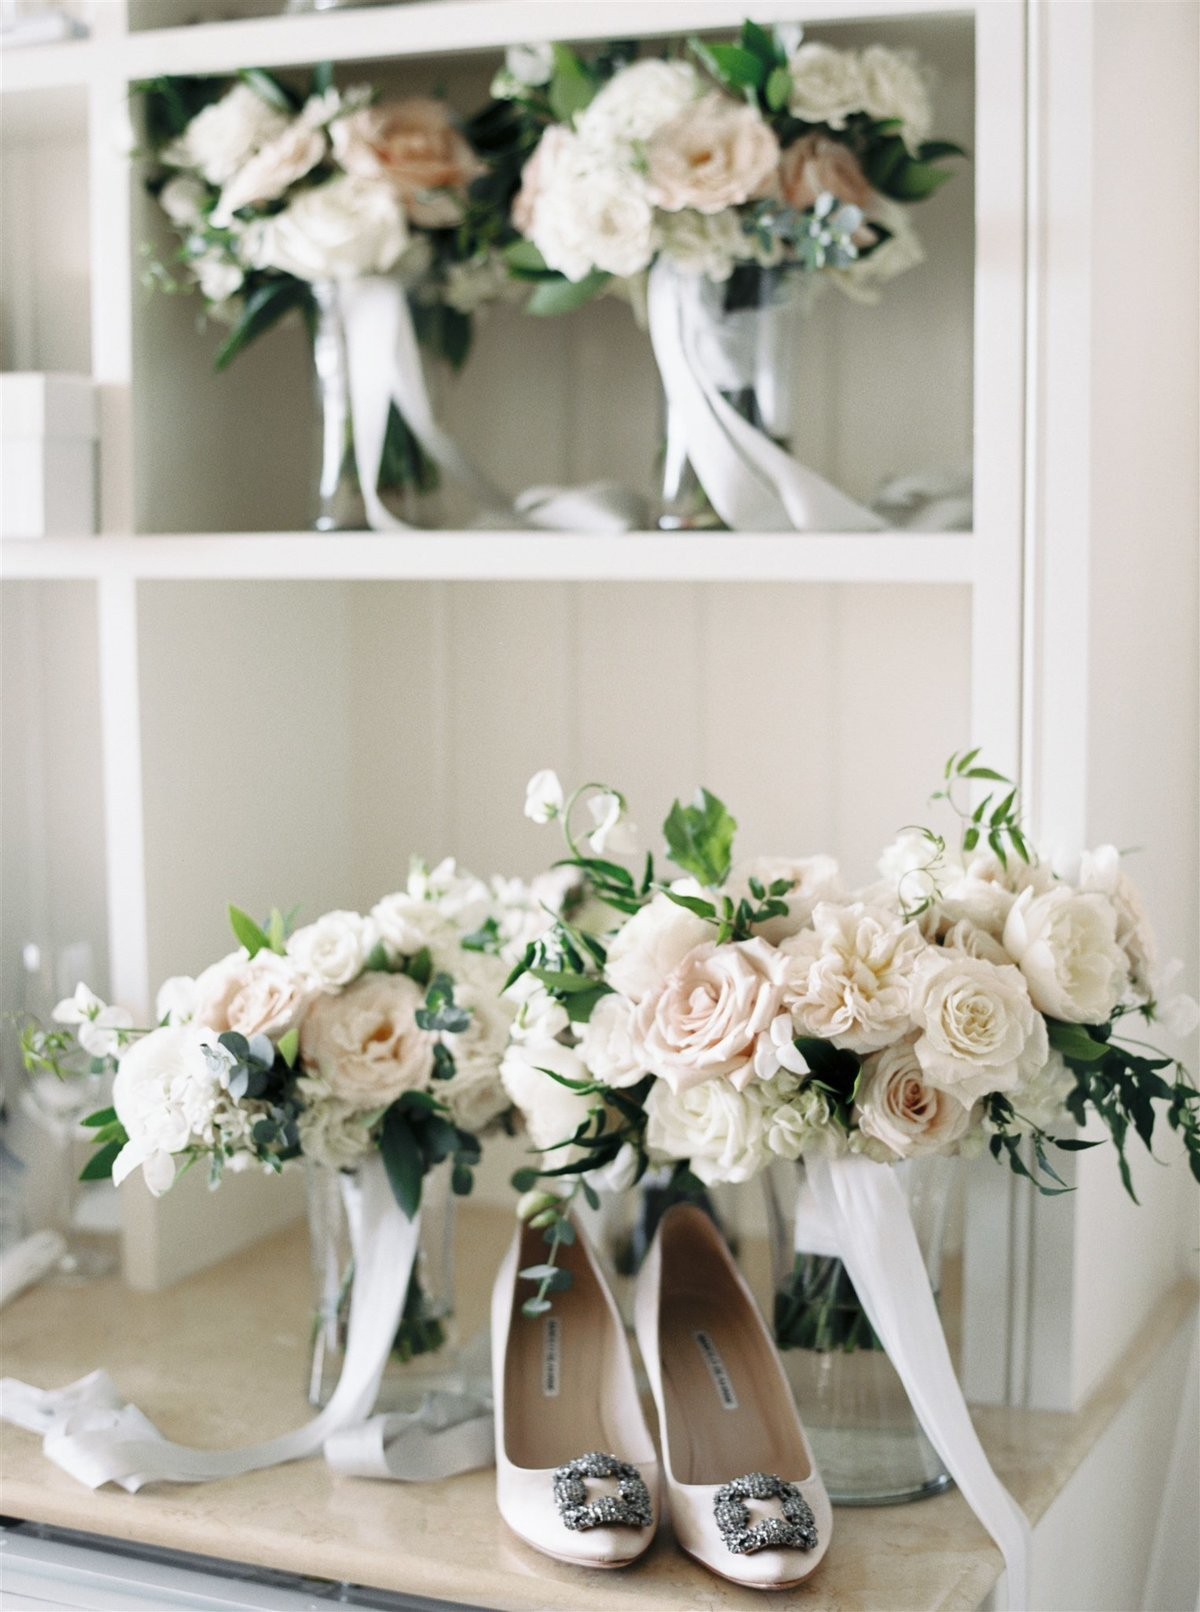 Manolo Blahnik shoes and garden inspired bouquets for a Cape Cod Wedding by luxury Cape Cod wedding planner and designer Always Yours Events